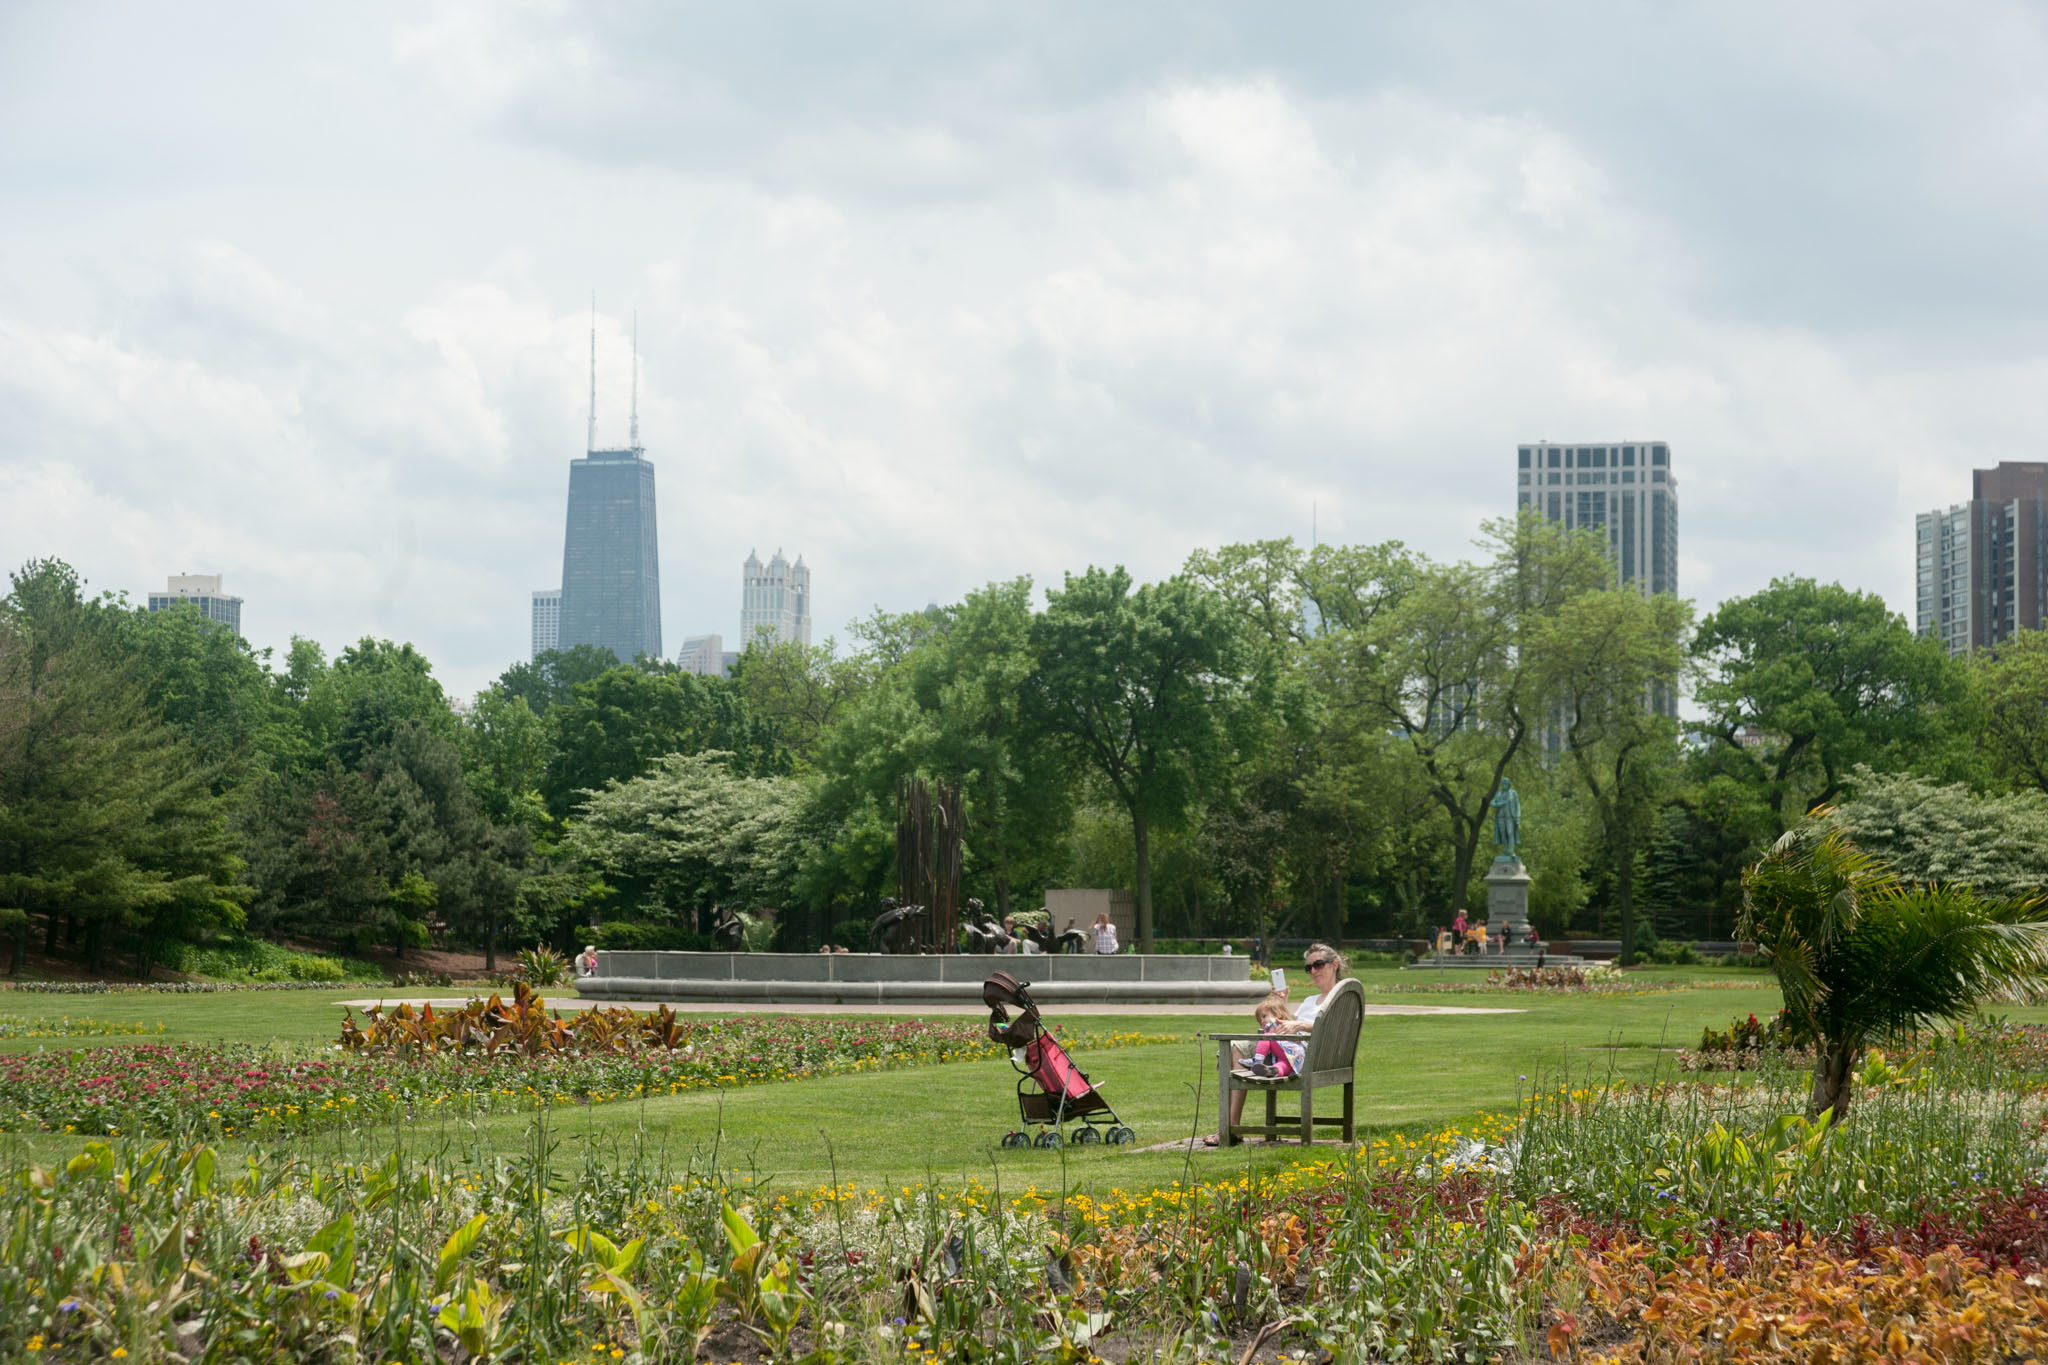 Explore a Chicago park